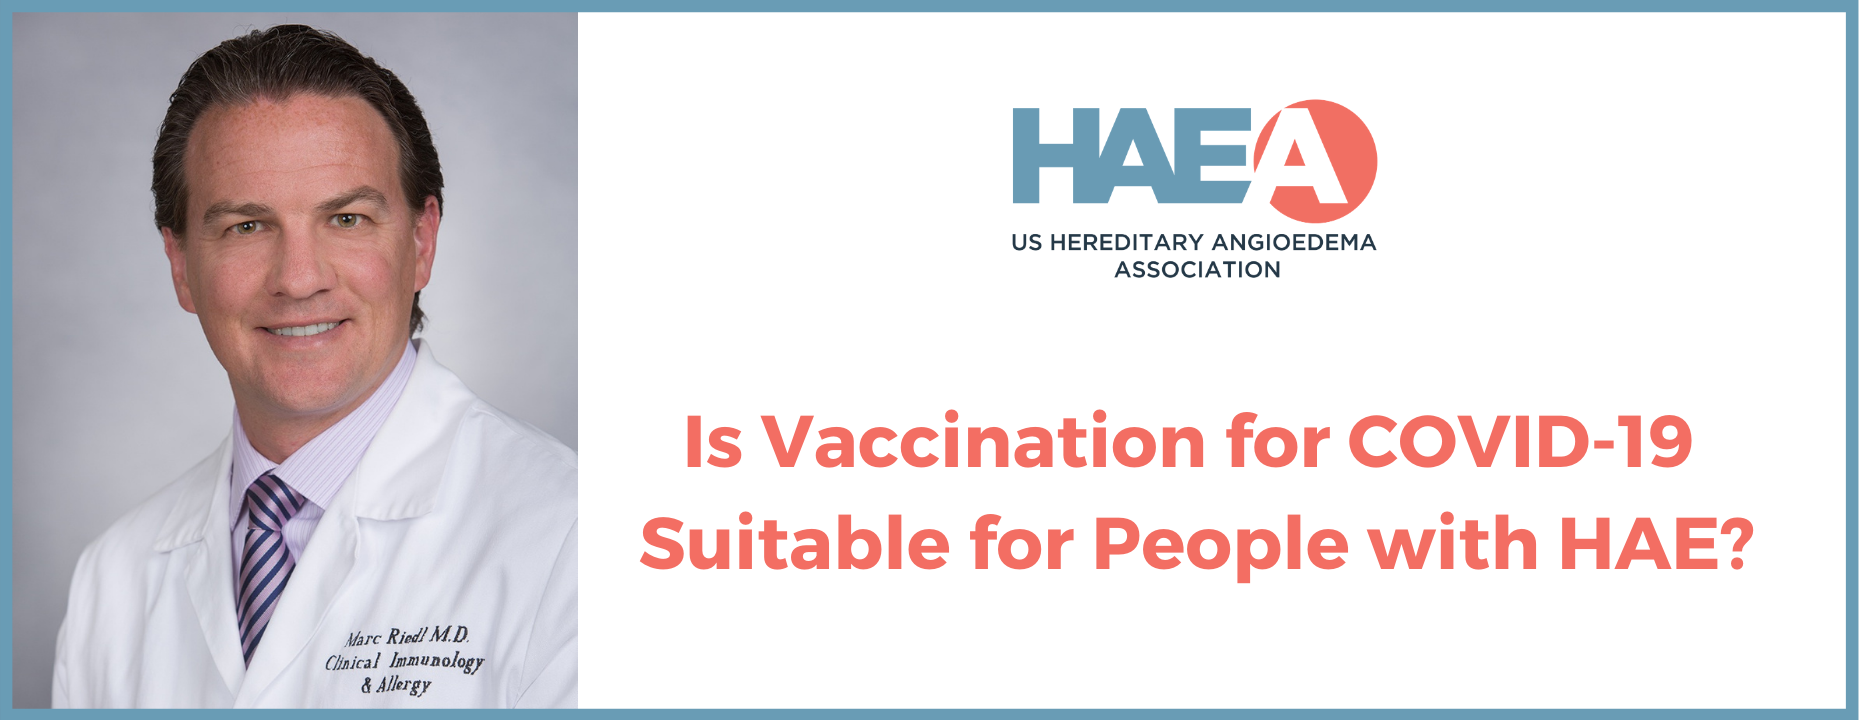 HAE expert physician Dr. Marc Riedl shares his thoughts about COVID-19 vaccination for people with HAE